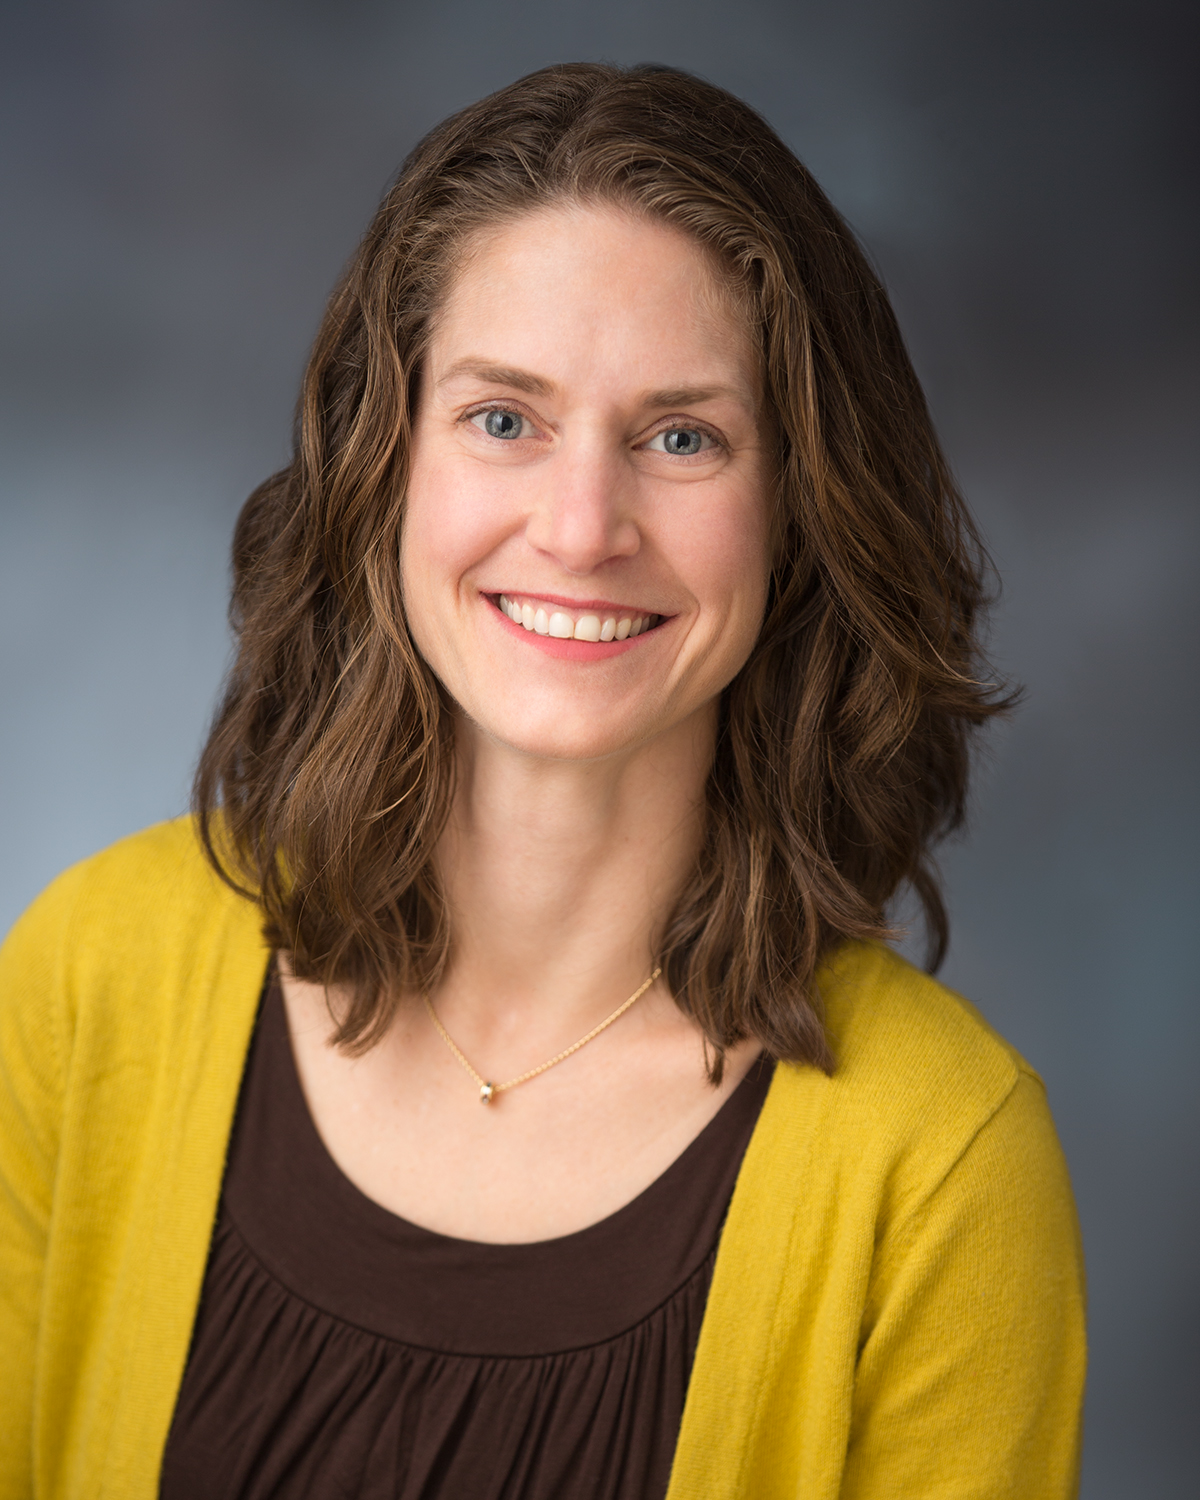 Katie Himel, CNM, MSN - Nurse-Midwife, Obstetrics and Gynecology, Oregon City, OR